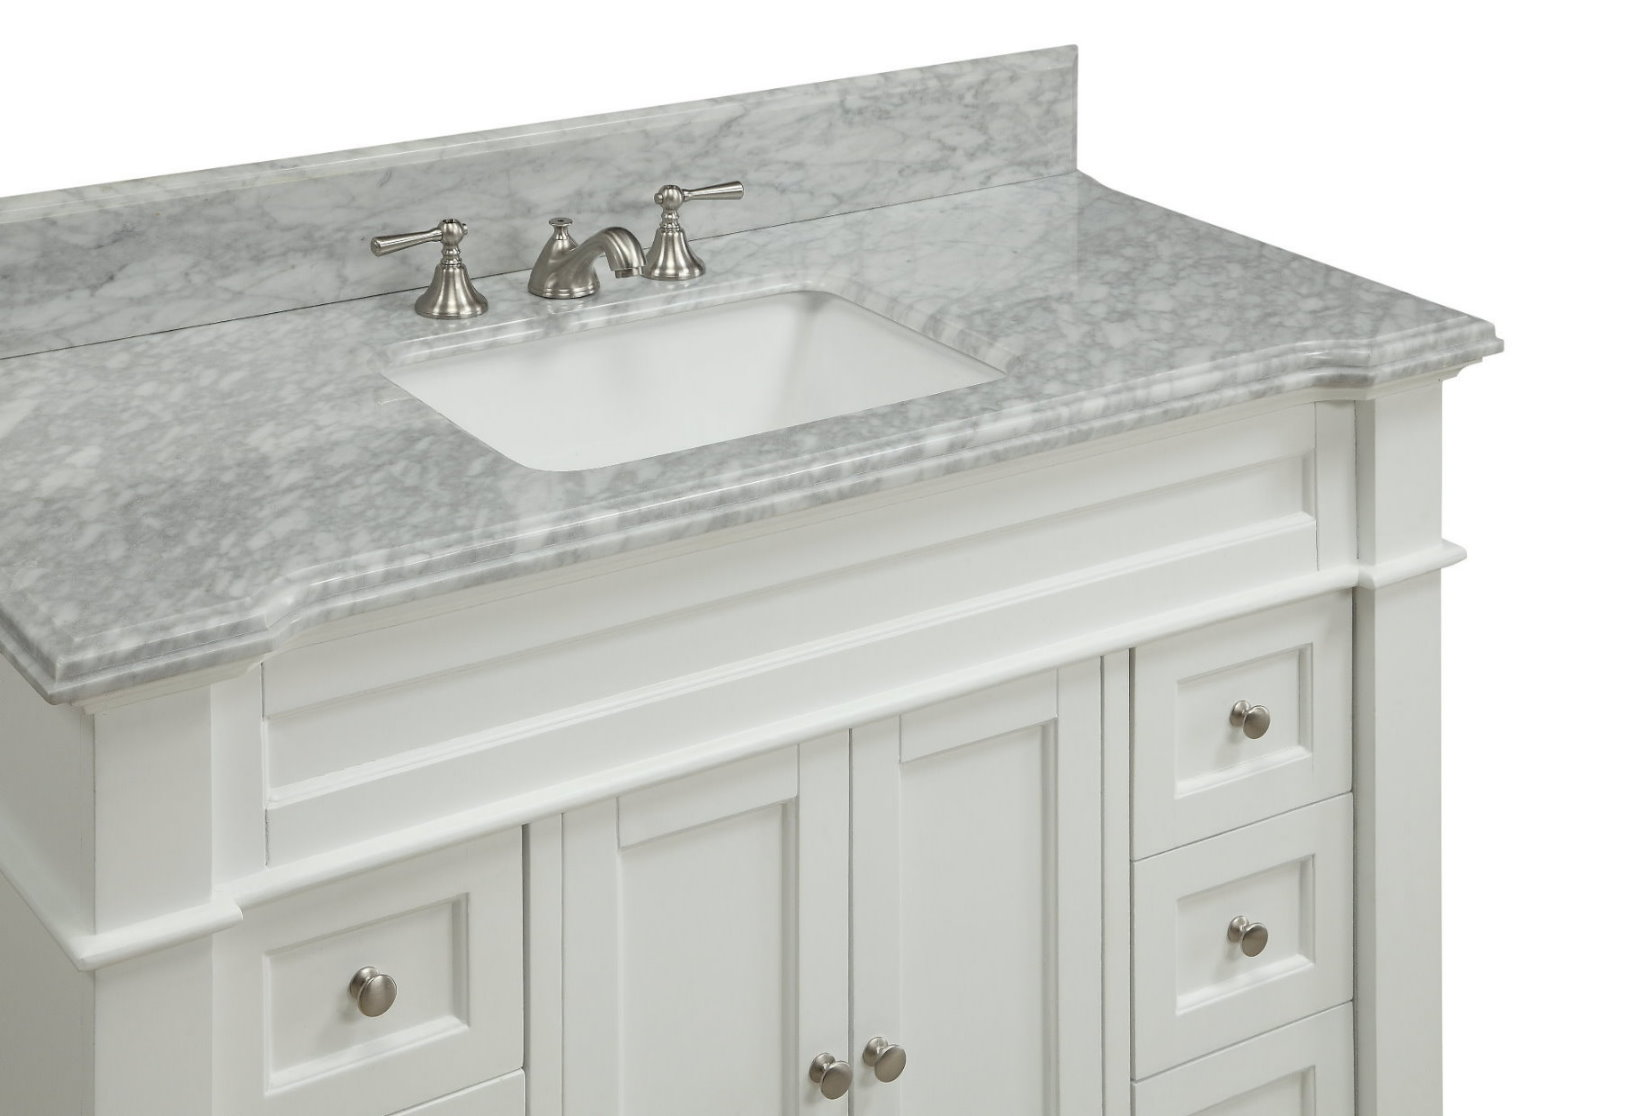 48 inch White Shaker Bathroom Vanity Cottage Beach Style Carrara ...